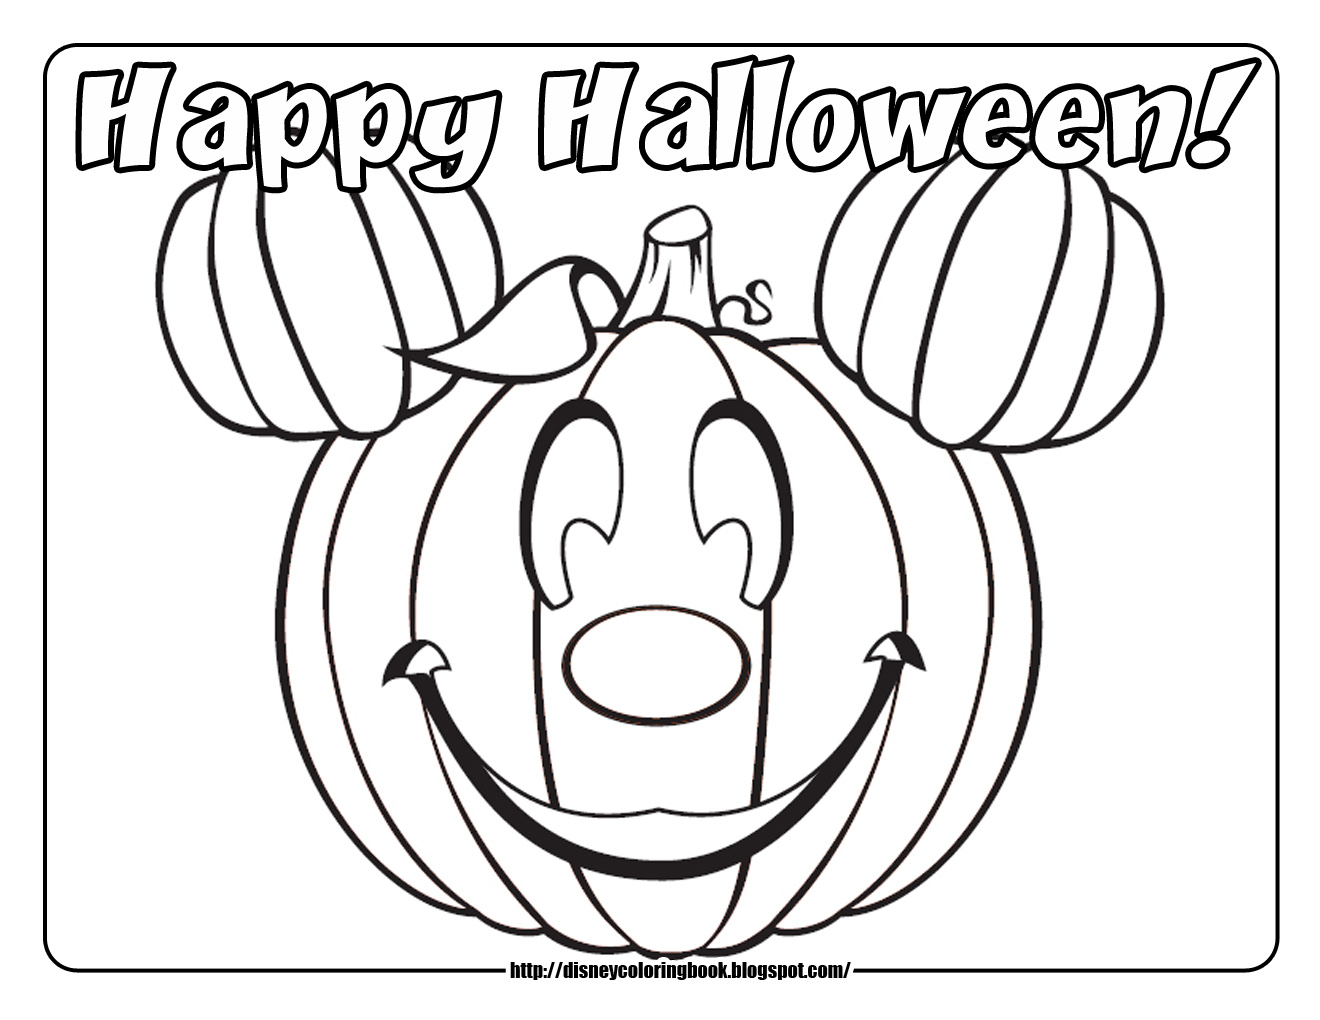 disney coloring pages halloween - photo#35